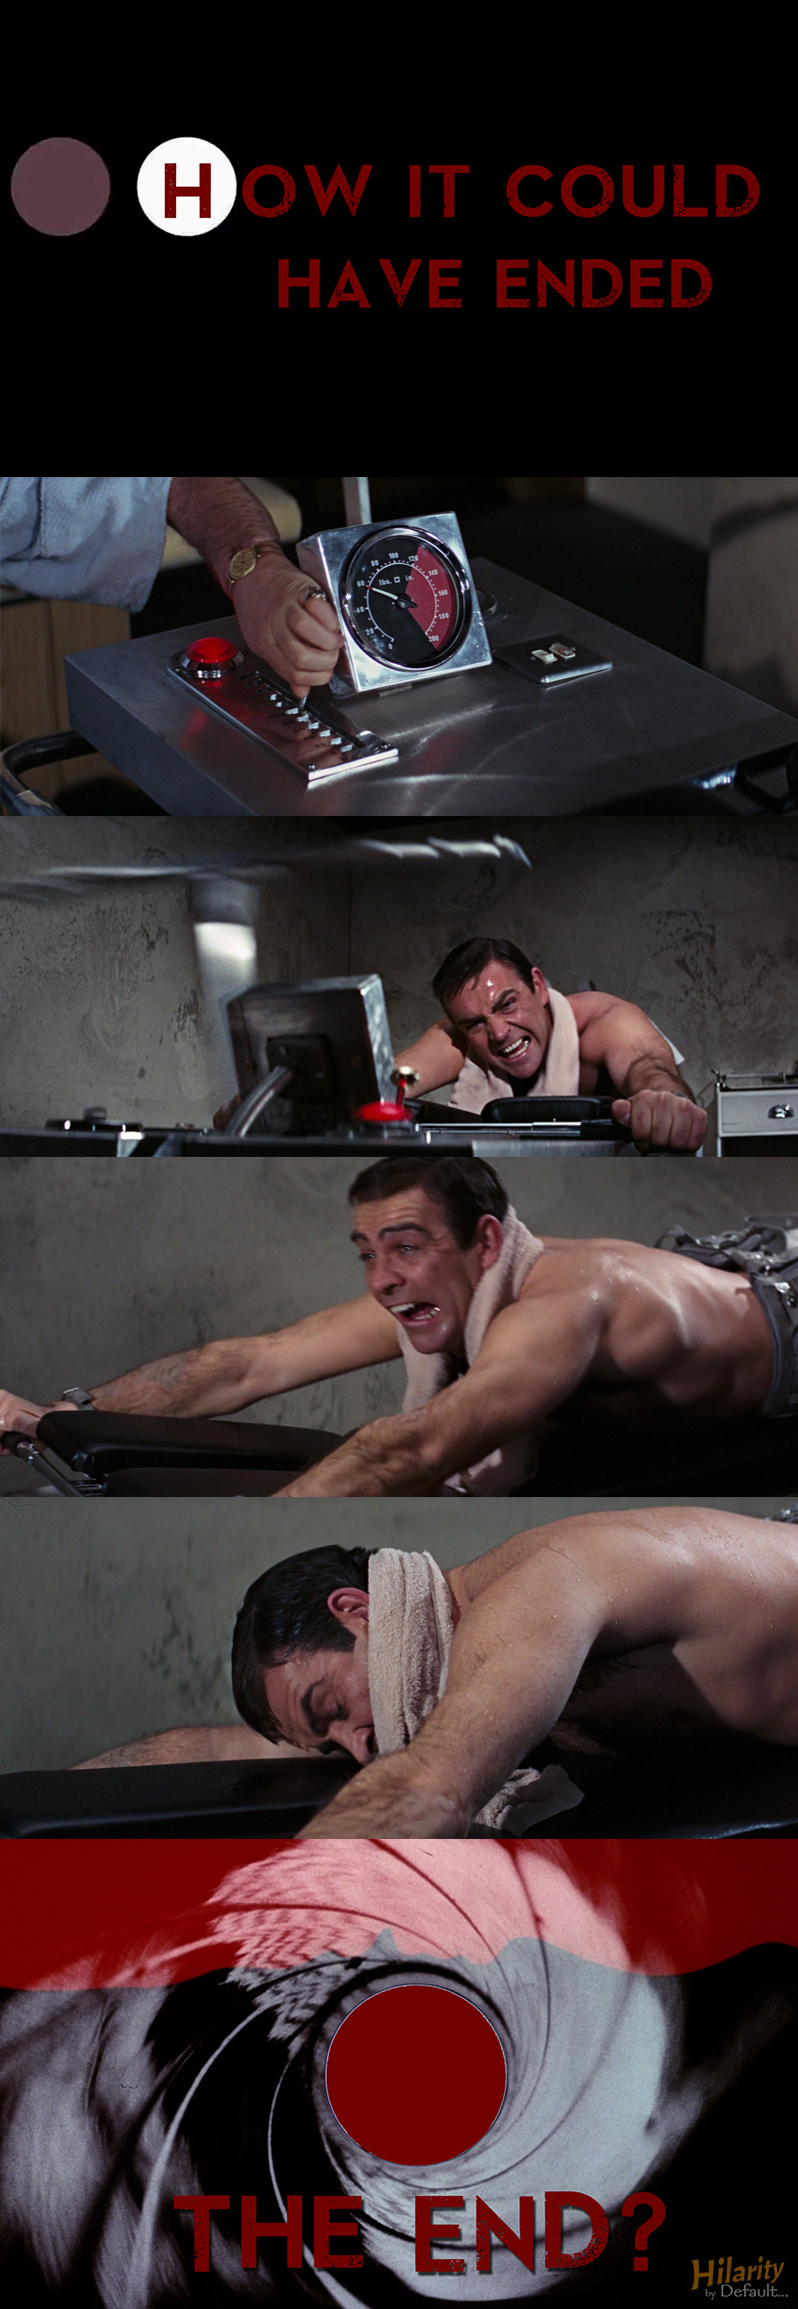 thunderball-how-it-could-have-ended